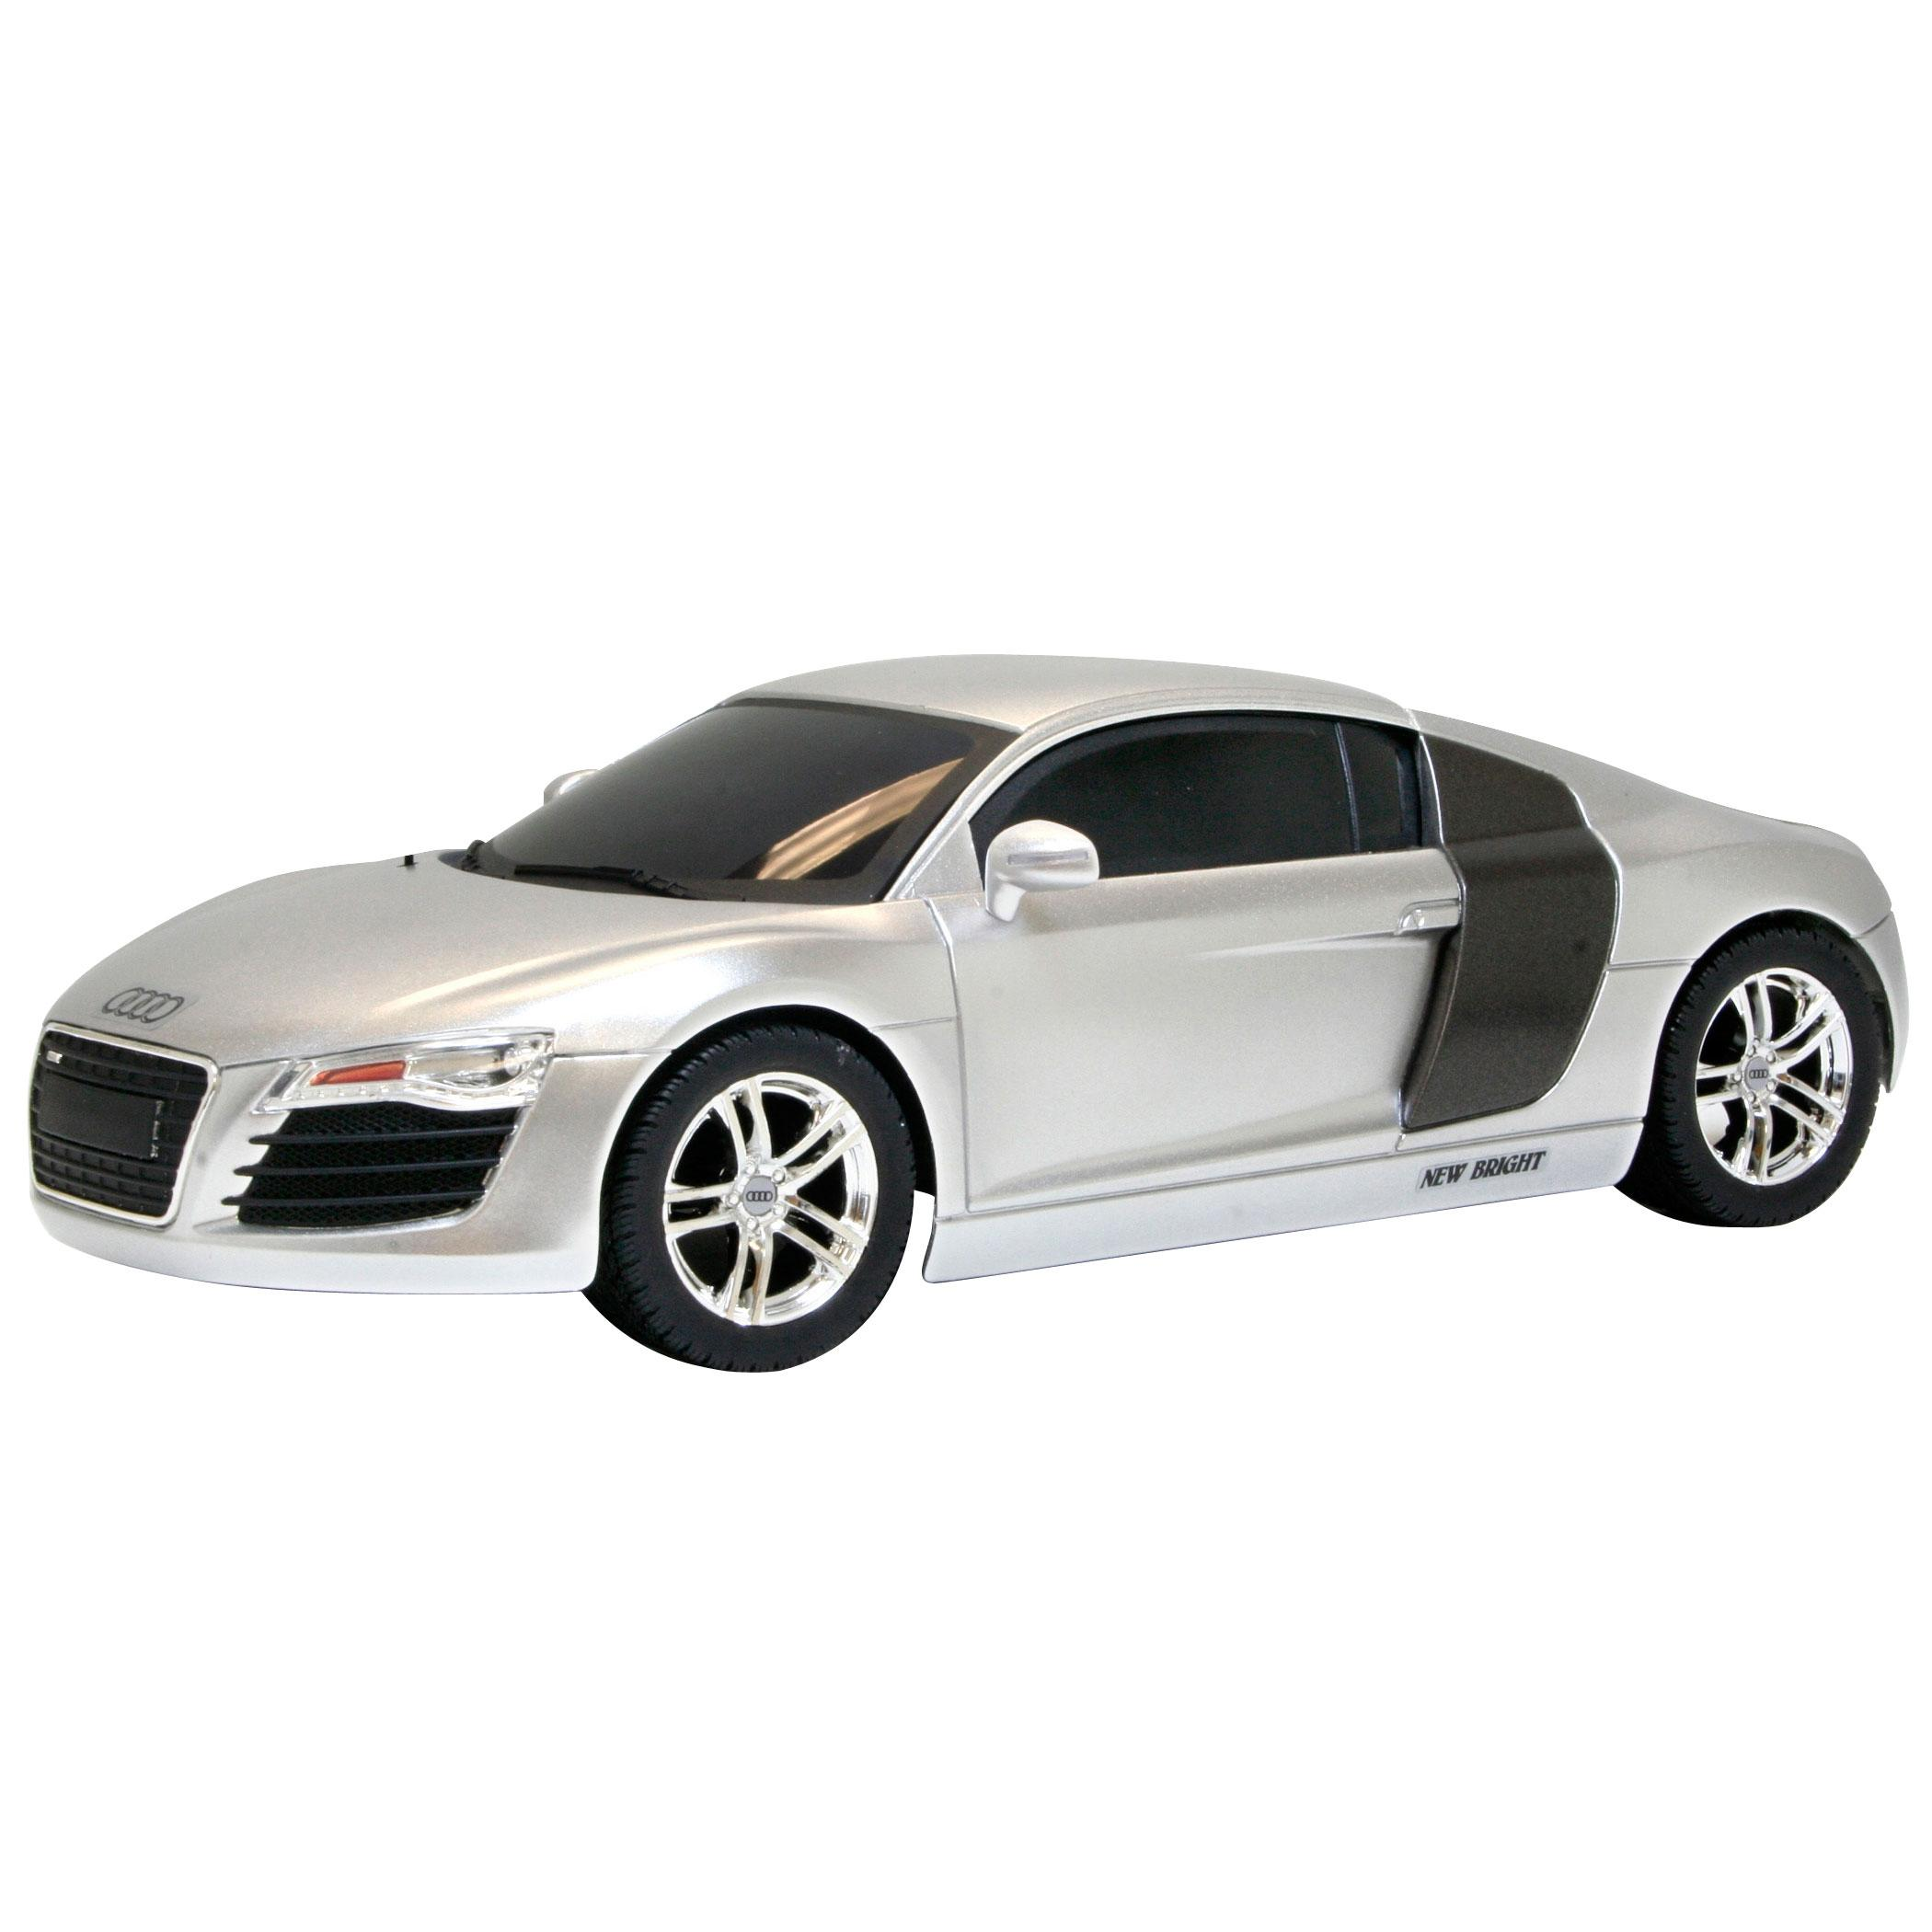 New Bright 1:16-scale Remote Control Full Function Audi